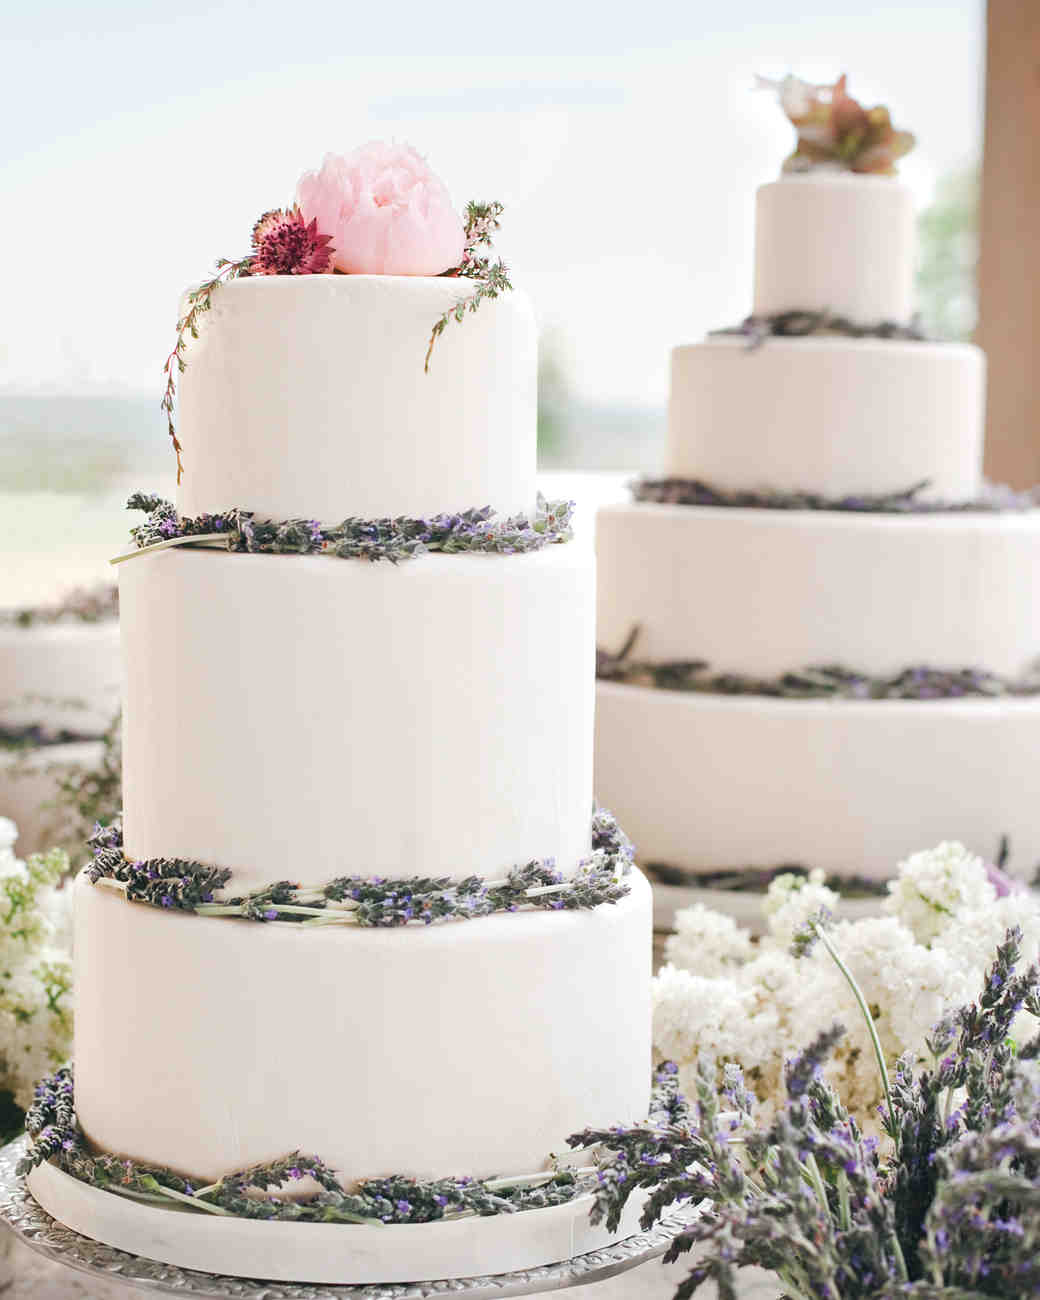 Wedding Cake Ideas Pinterest: Spring Wedding Cakes That Are (Almost) Too Pretty To Eat